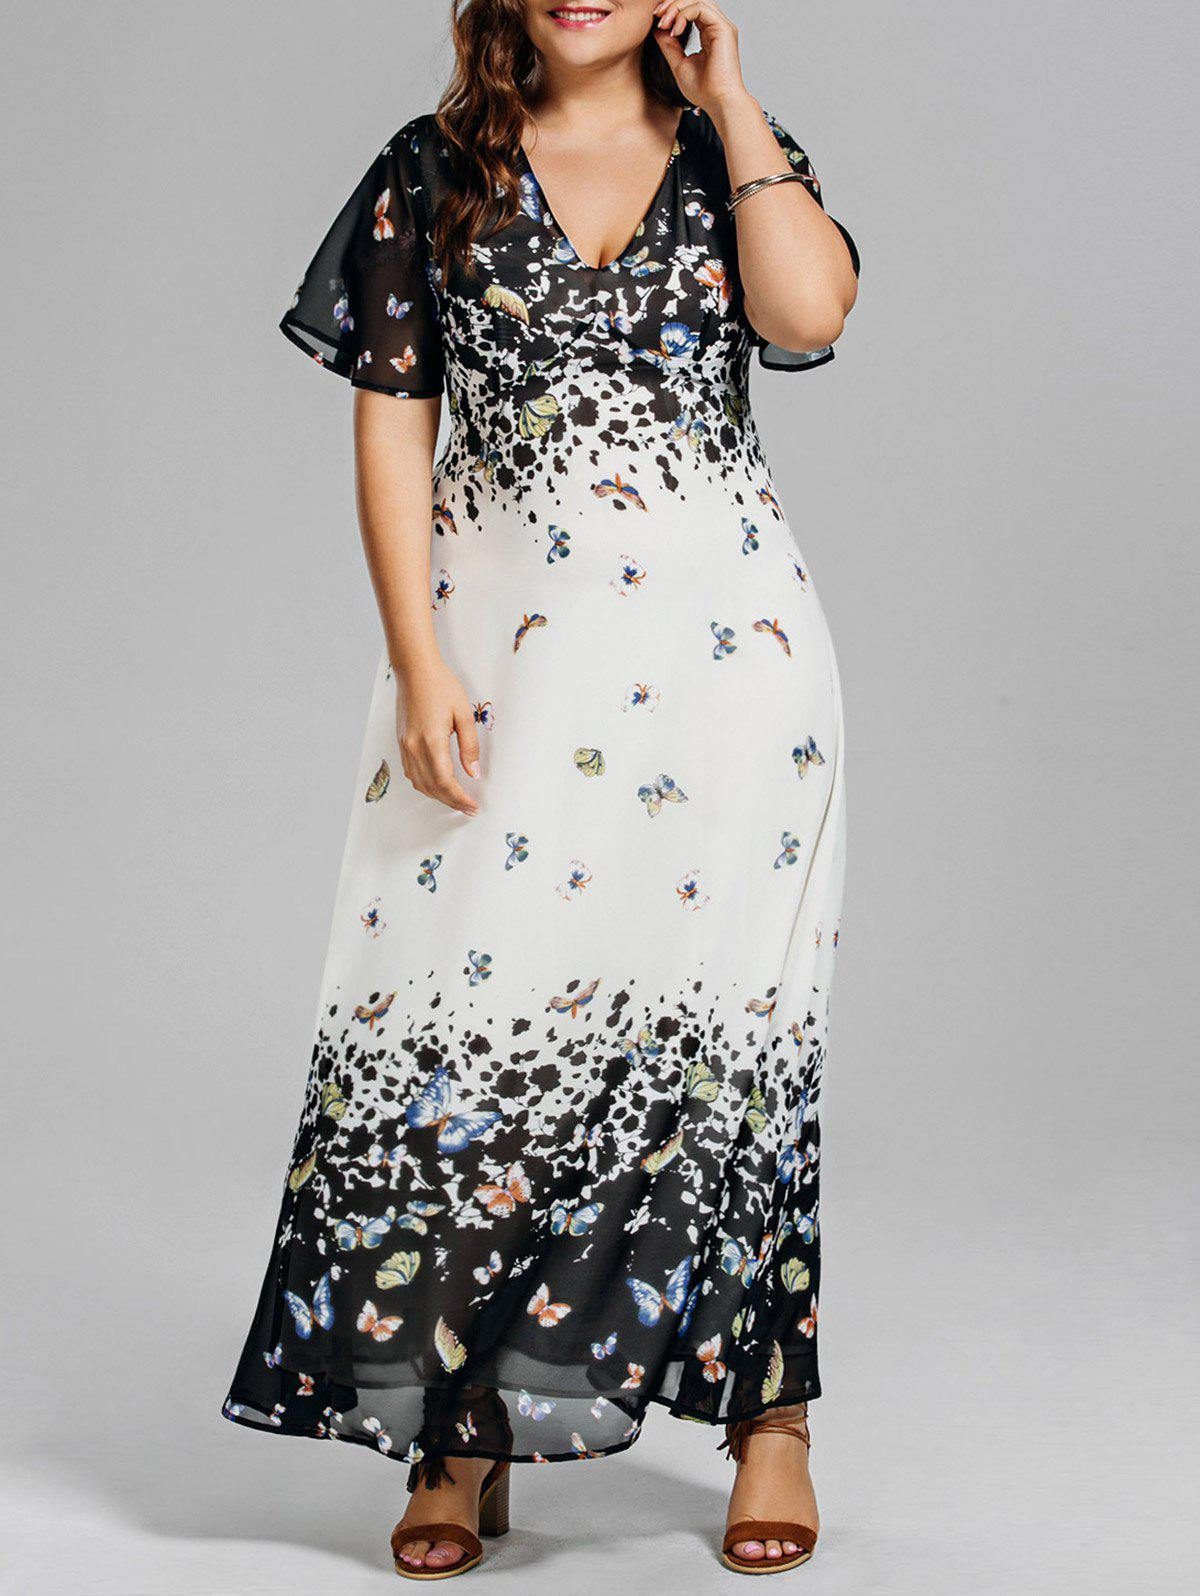 Long Plus Size Butterfly Print Beach DressWOMEN<br><br>Size: 4XL; Color: COLORMIX; Style: Brief; Material: Polyester; Silhouette: A-Line; Dresses Length: Floor-Length; Neckline: Plunging Neck; Sleeve Length: Short Sleeves; Pattern Type: Floral; With Belt: No; Season: Summer; Weight: 0.3800kg; Package Contents: 1 x Dress;